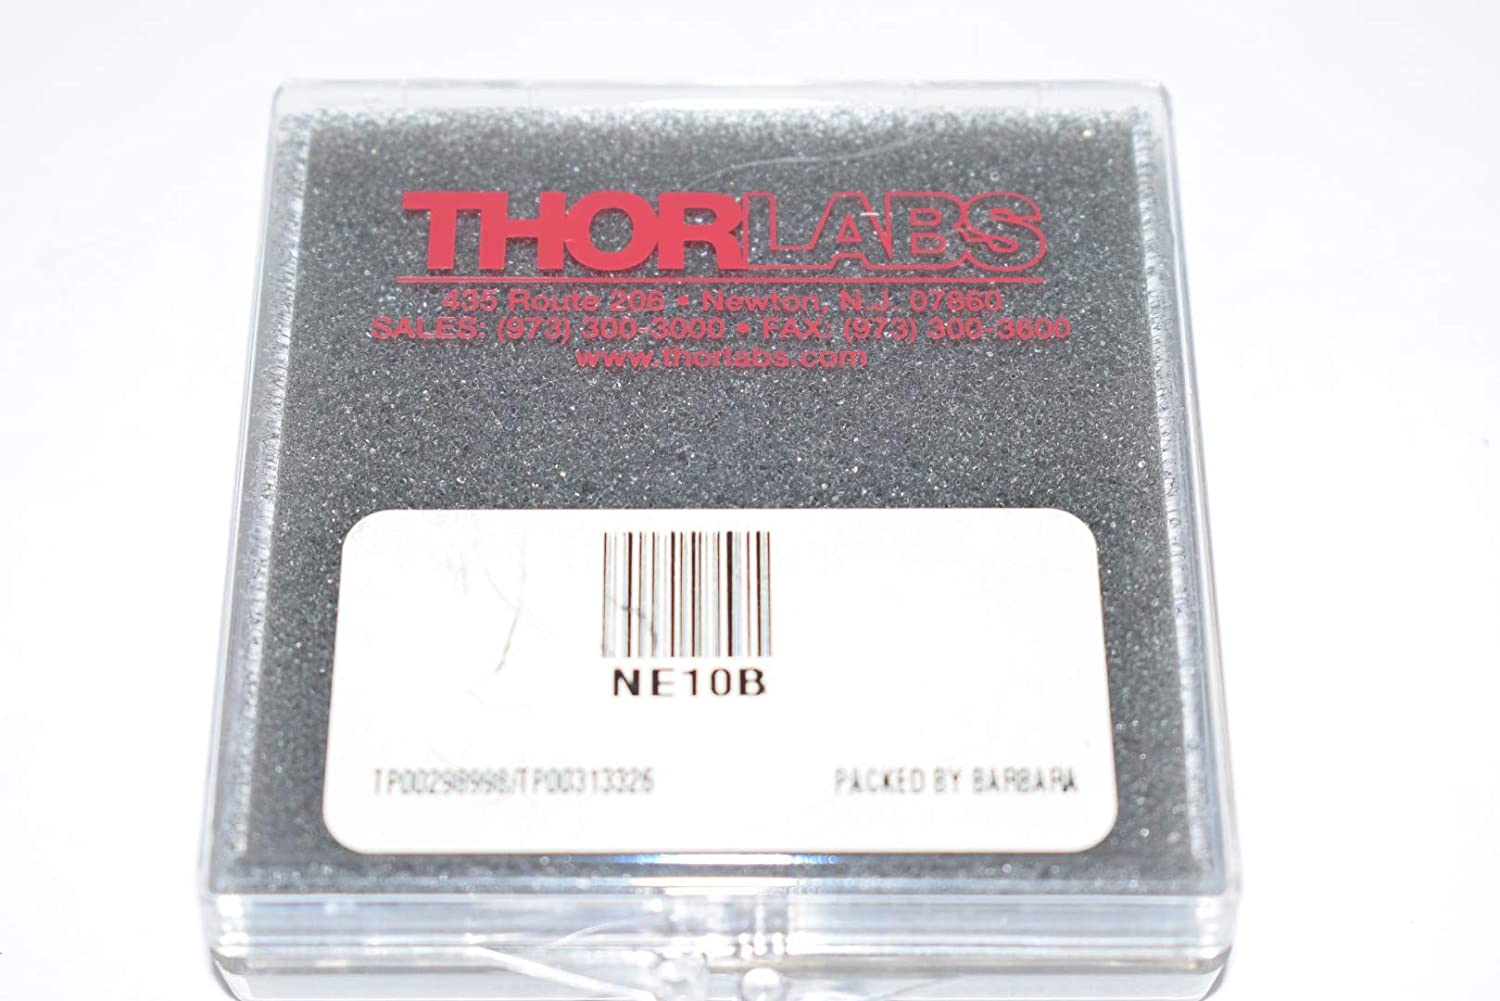 THORLABS A414-B f = 3.30 mm, NA = 0.47, Unmounted Rochester Aspheric Lens, AR: 650-1050 nm